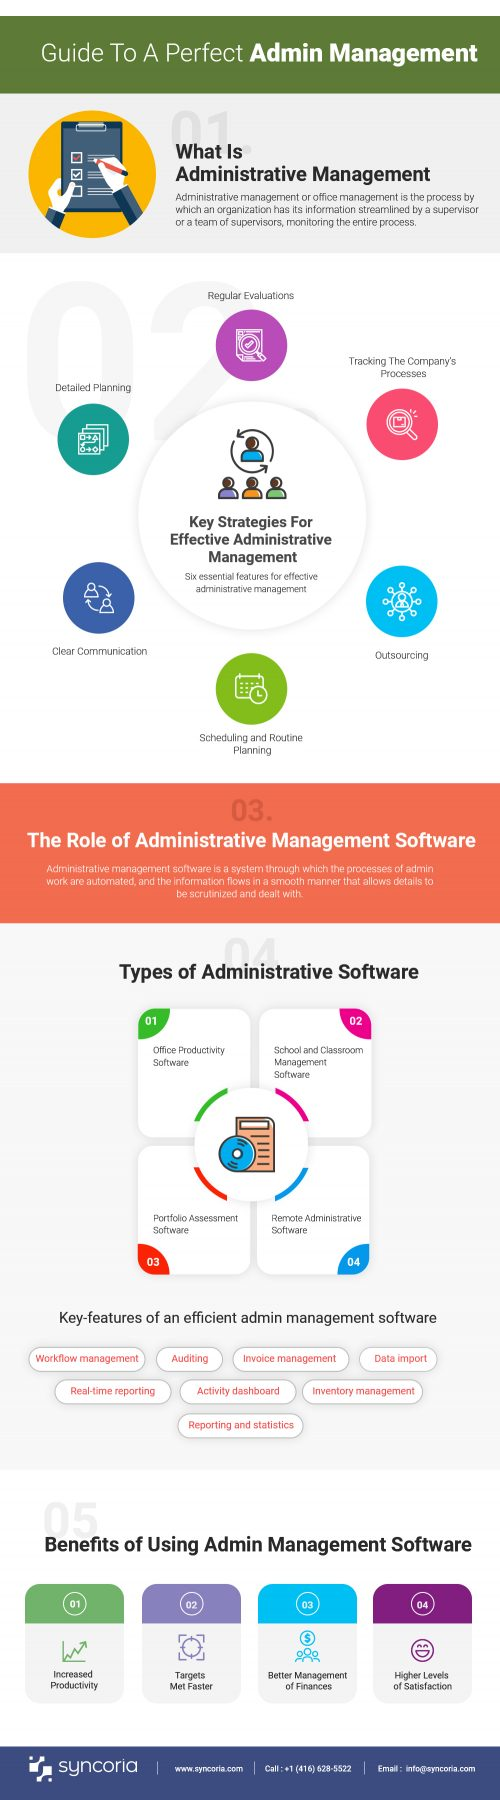 Effective Administrative Management